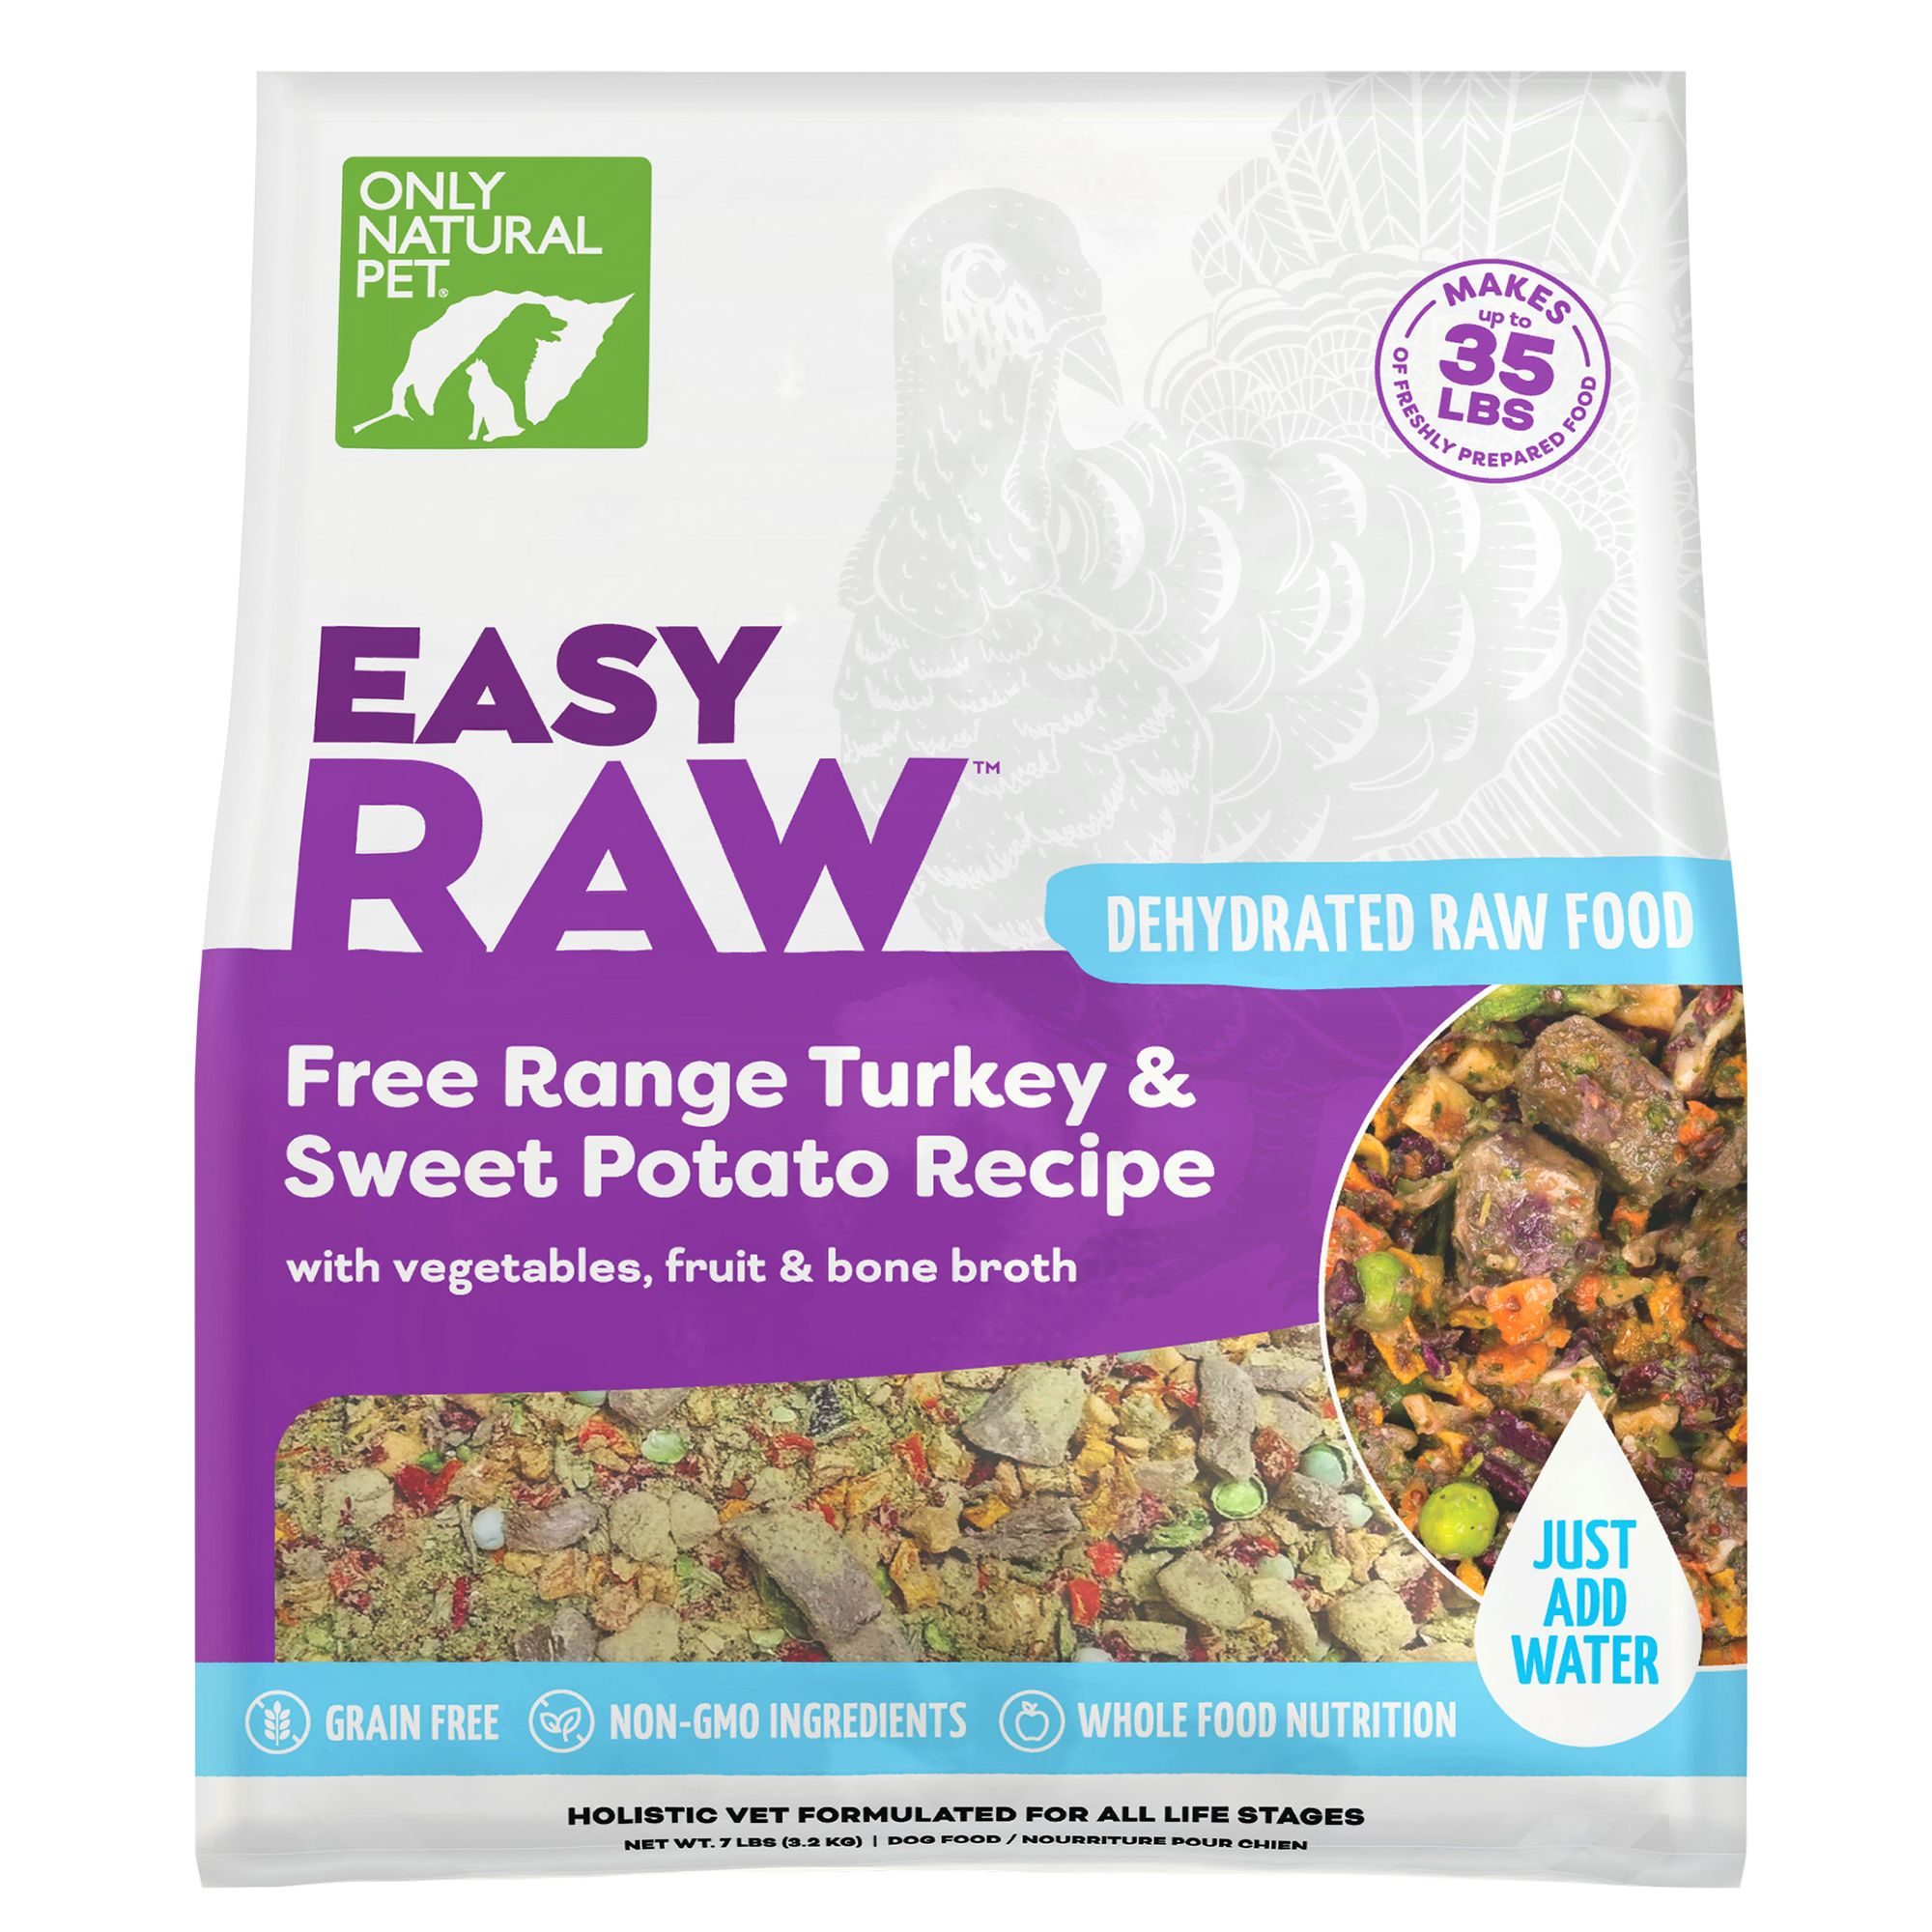 Only Natural Pet EasyRaw Dog Food - Raw, Grain Free, Dehydrated, Turkey and Sweet Potato size: 7 Lb